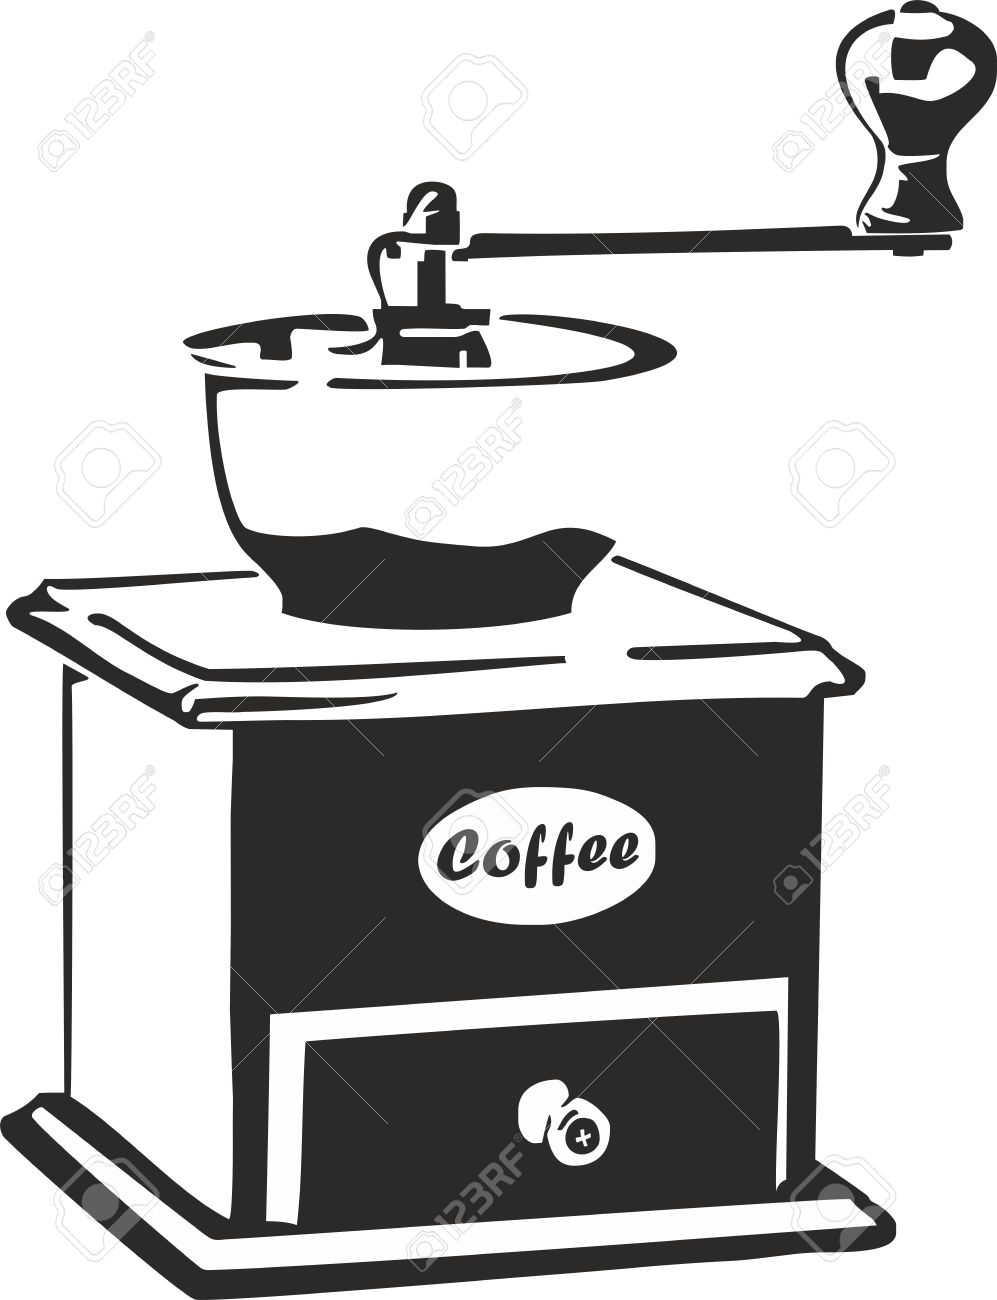 Coffee grinder clipart - Clipground